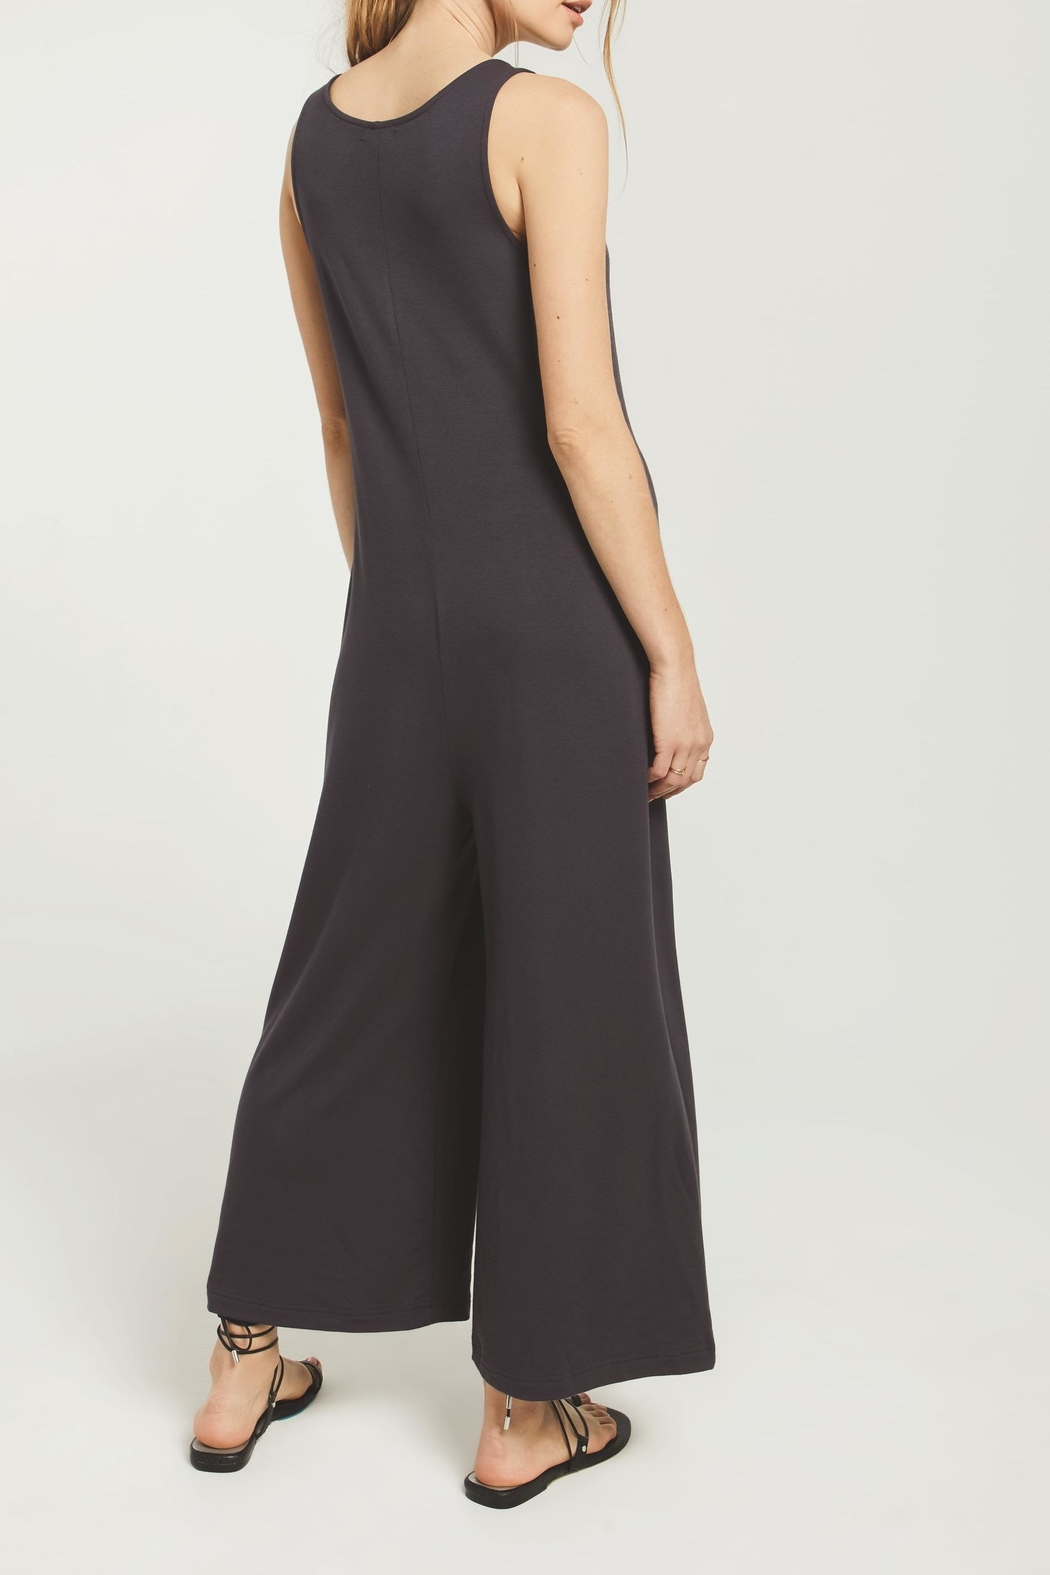 z supply Mojave Jumpsuit - Side Cropped Image